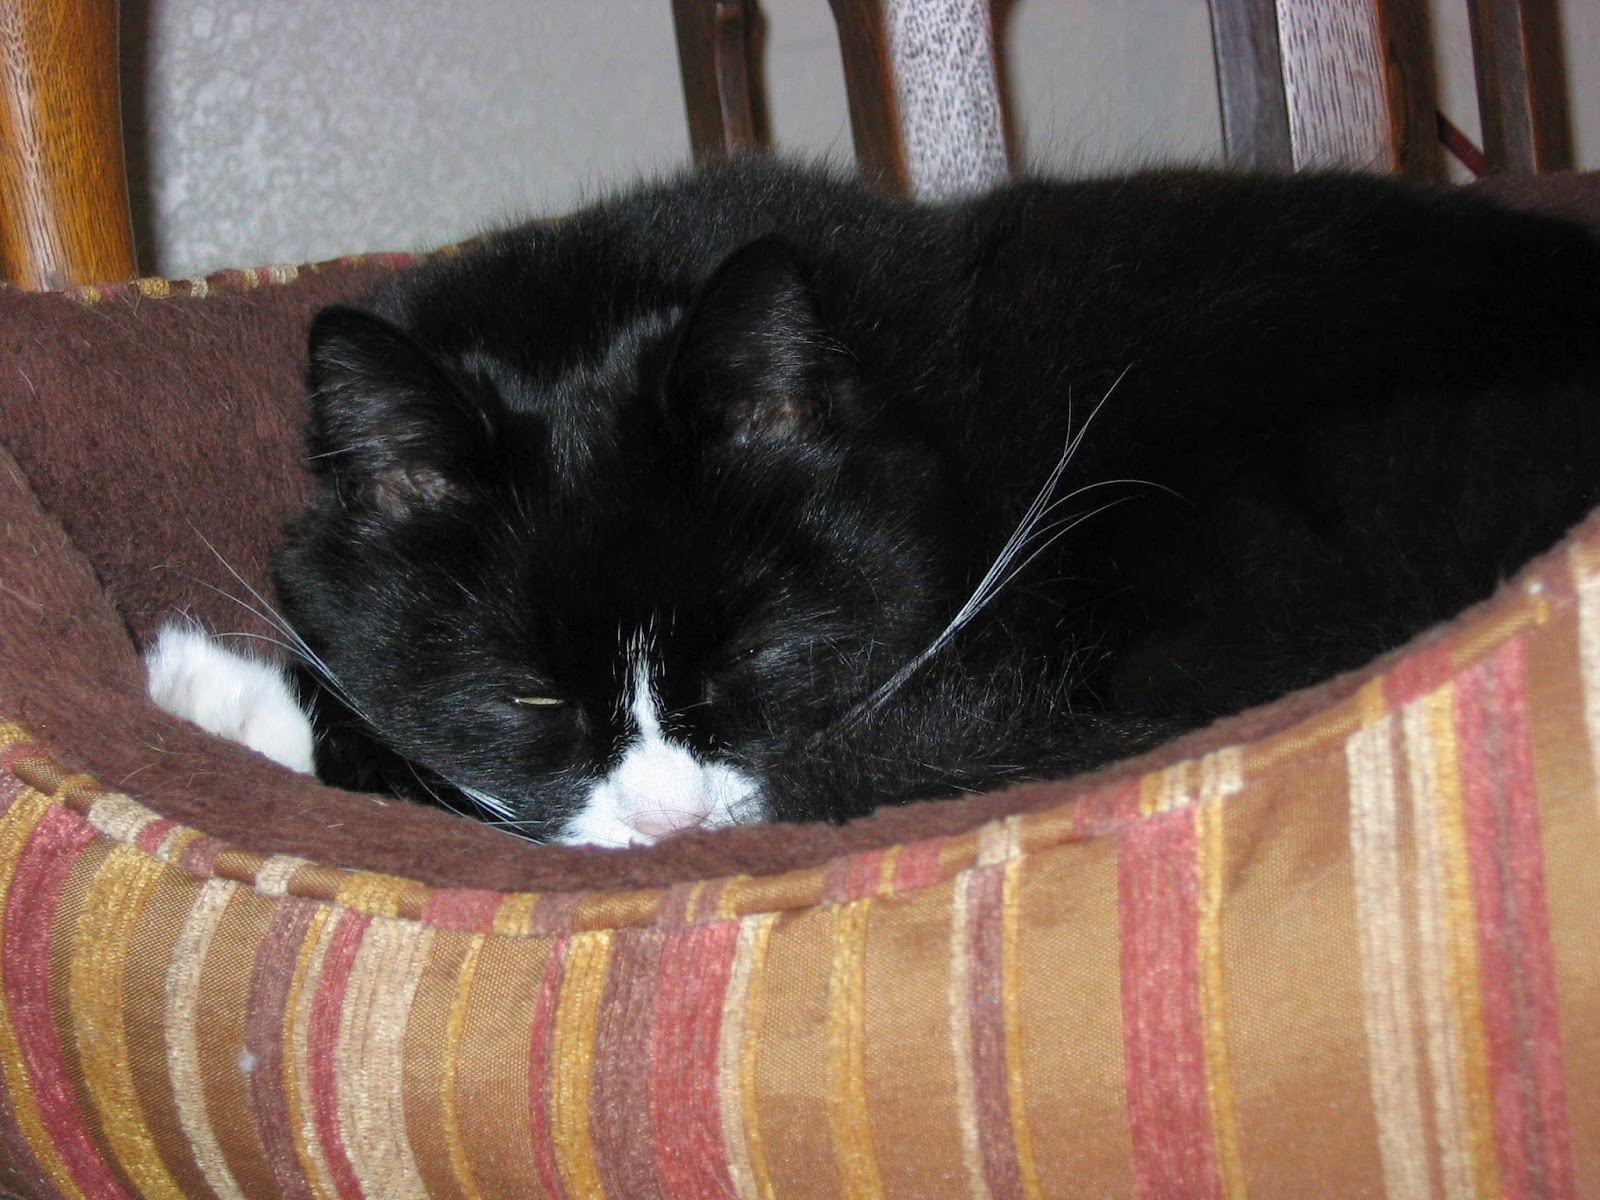 Maggie the cat in her bed